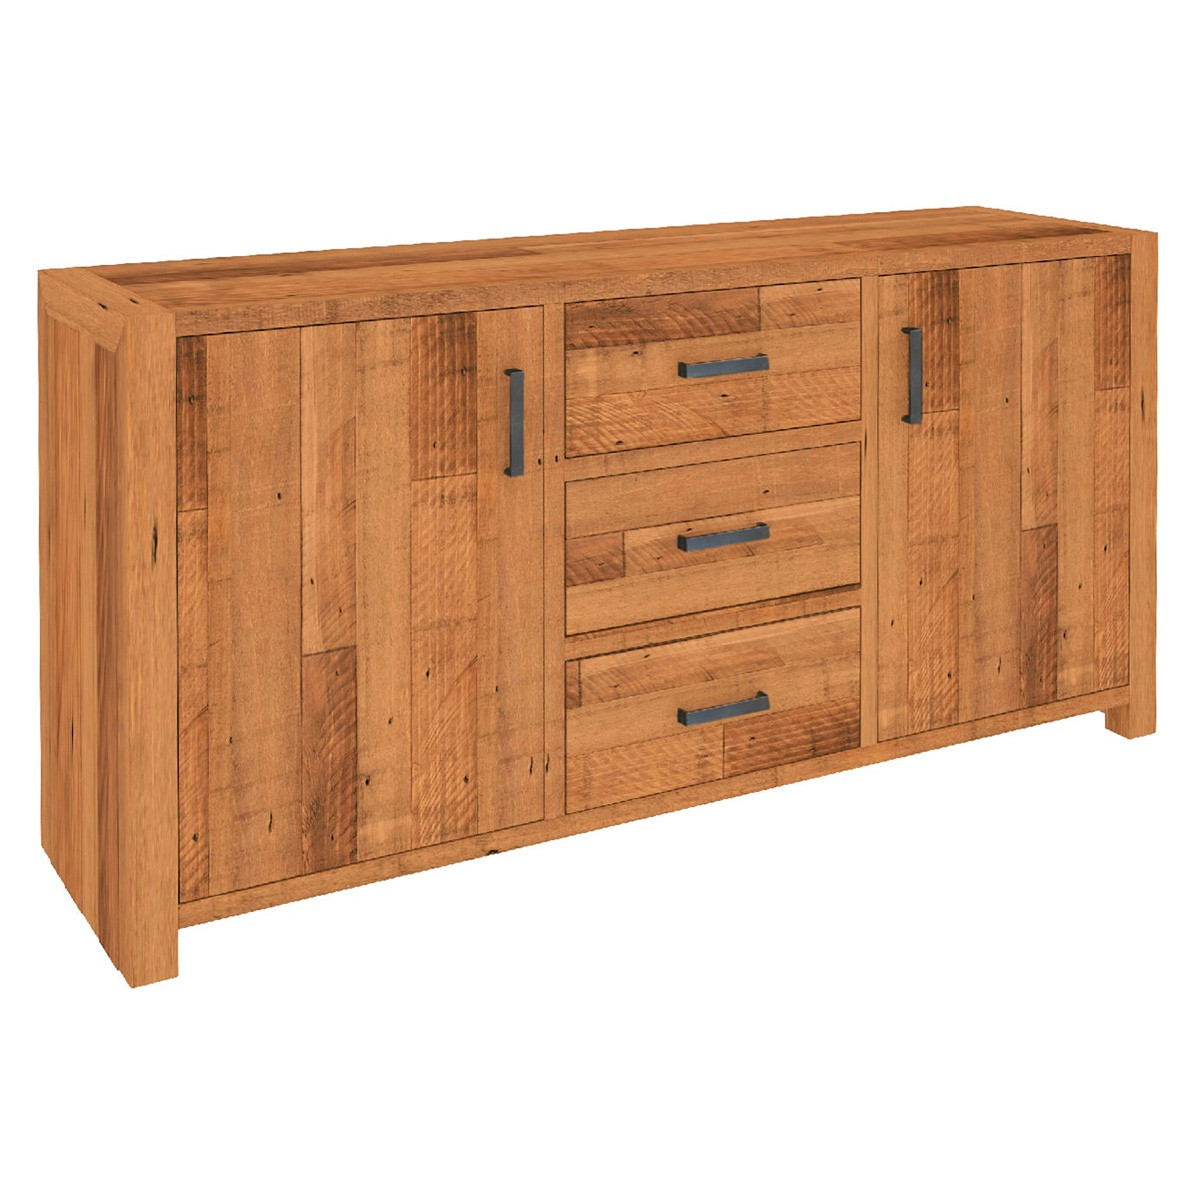 Arcadia Solid Timber 2 Door 3 Drawer Buffet Table, Antique Barley